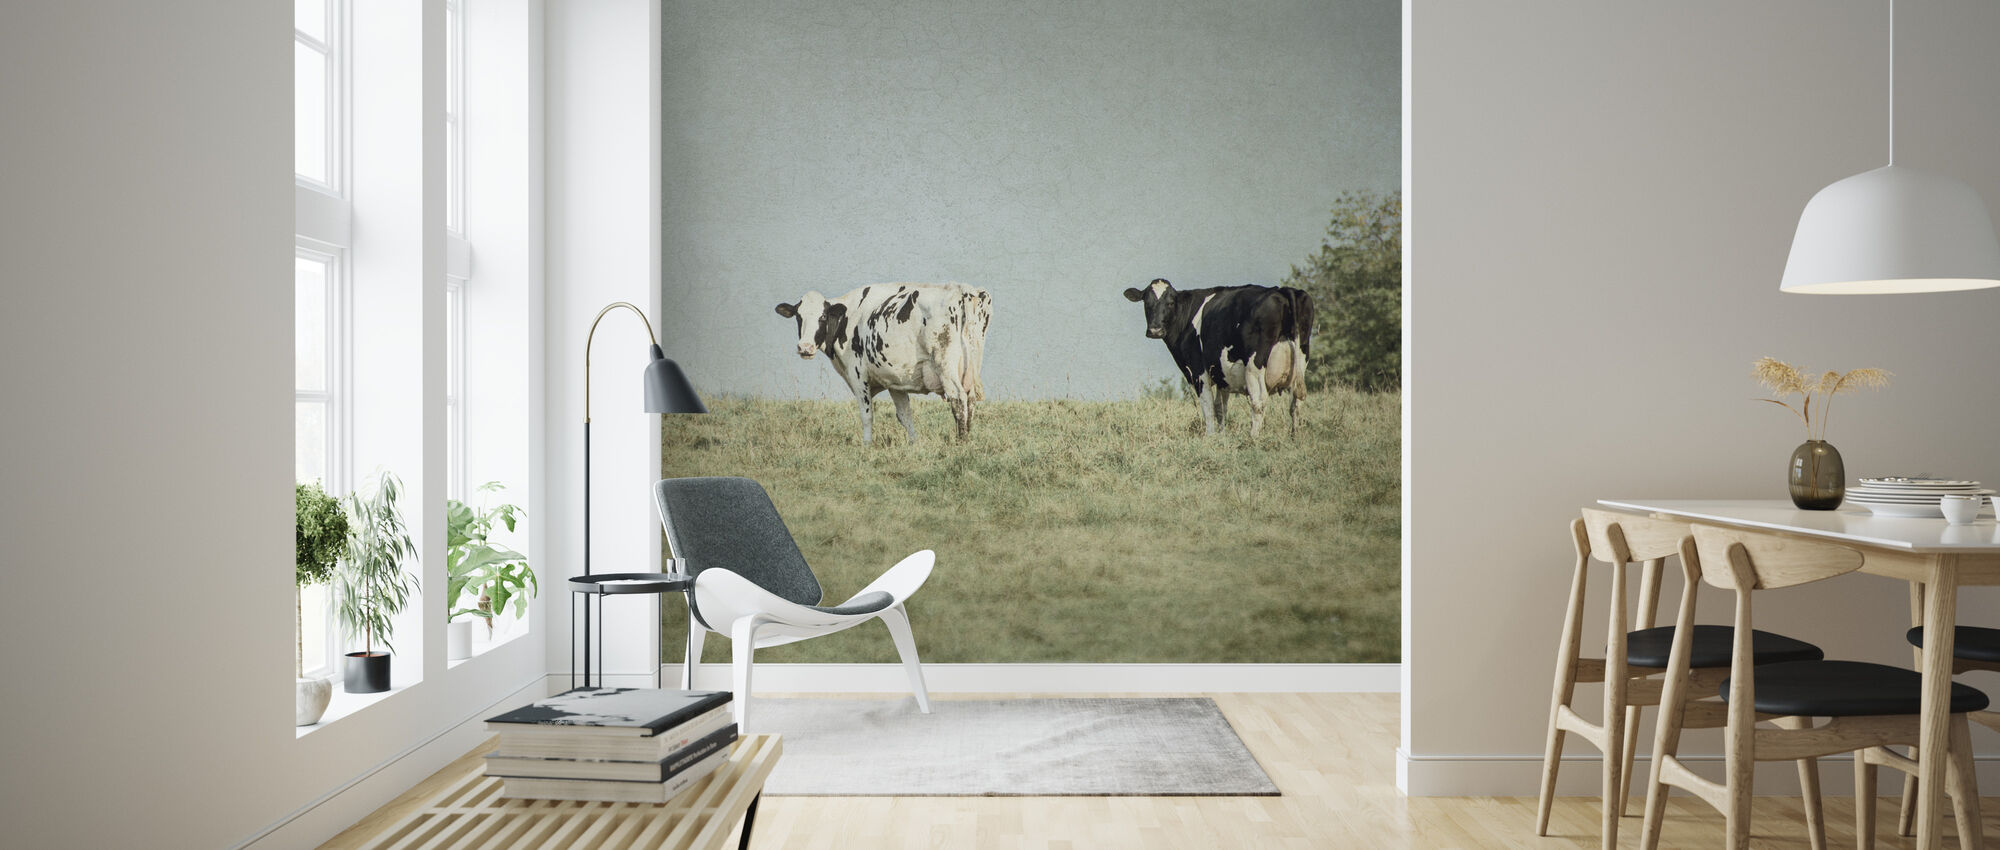 Grazing Cows - Wallpaper - Living Room